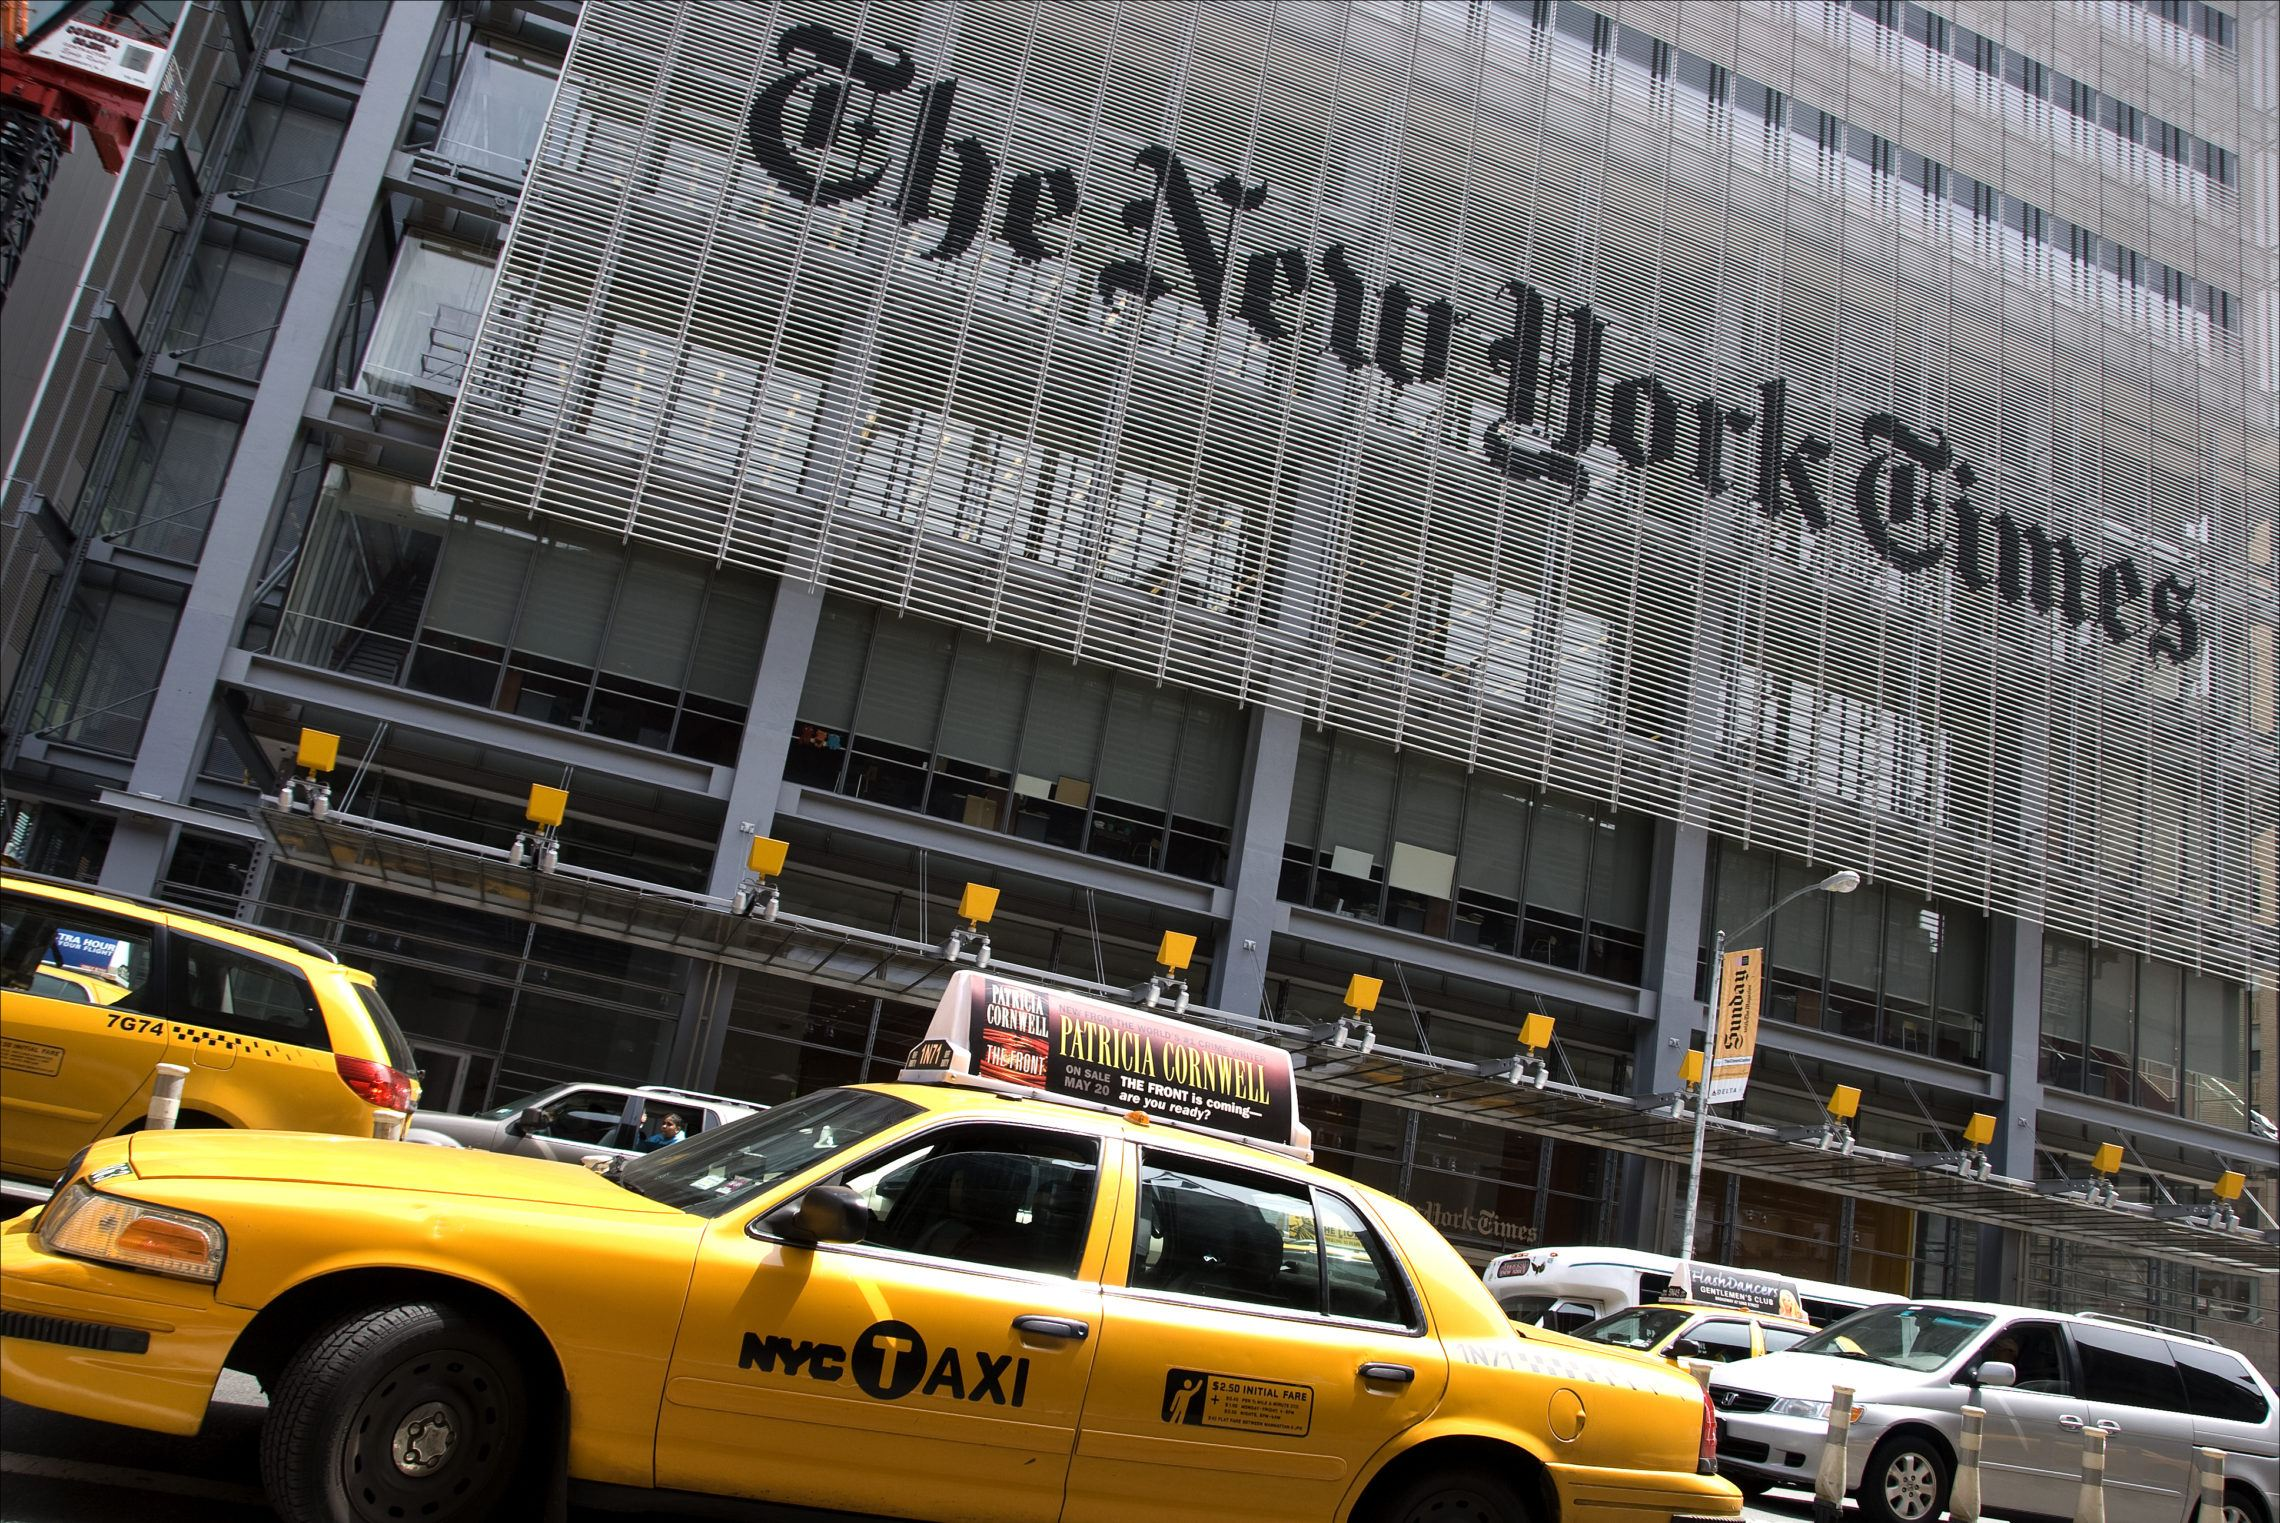 New York Times Slammed for 'Partisan Activism' as It Tries to Find New Ways to Go After Trump